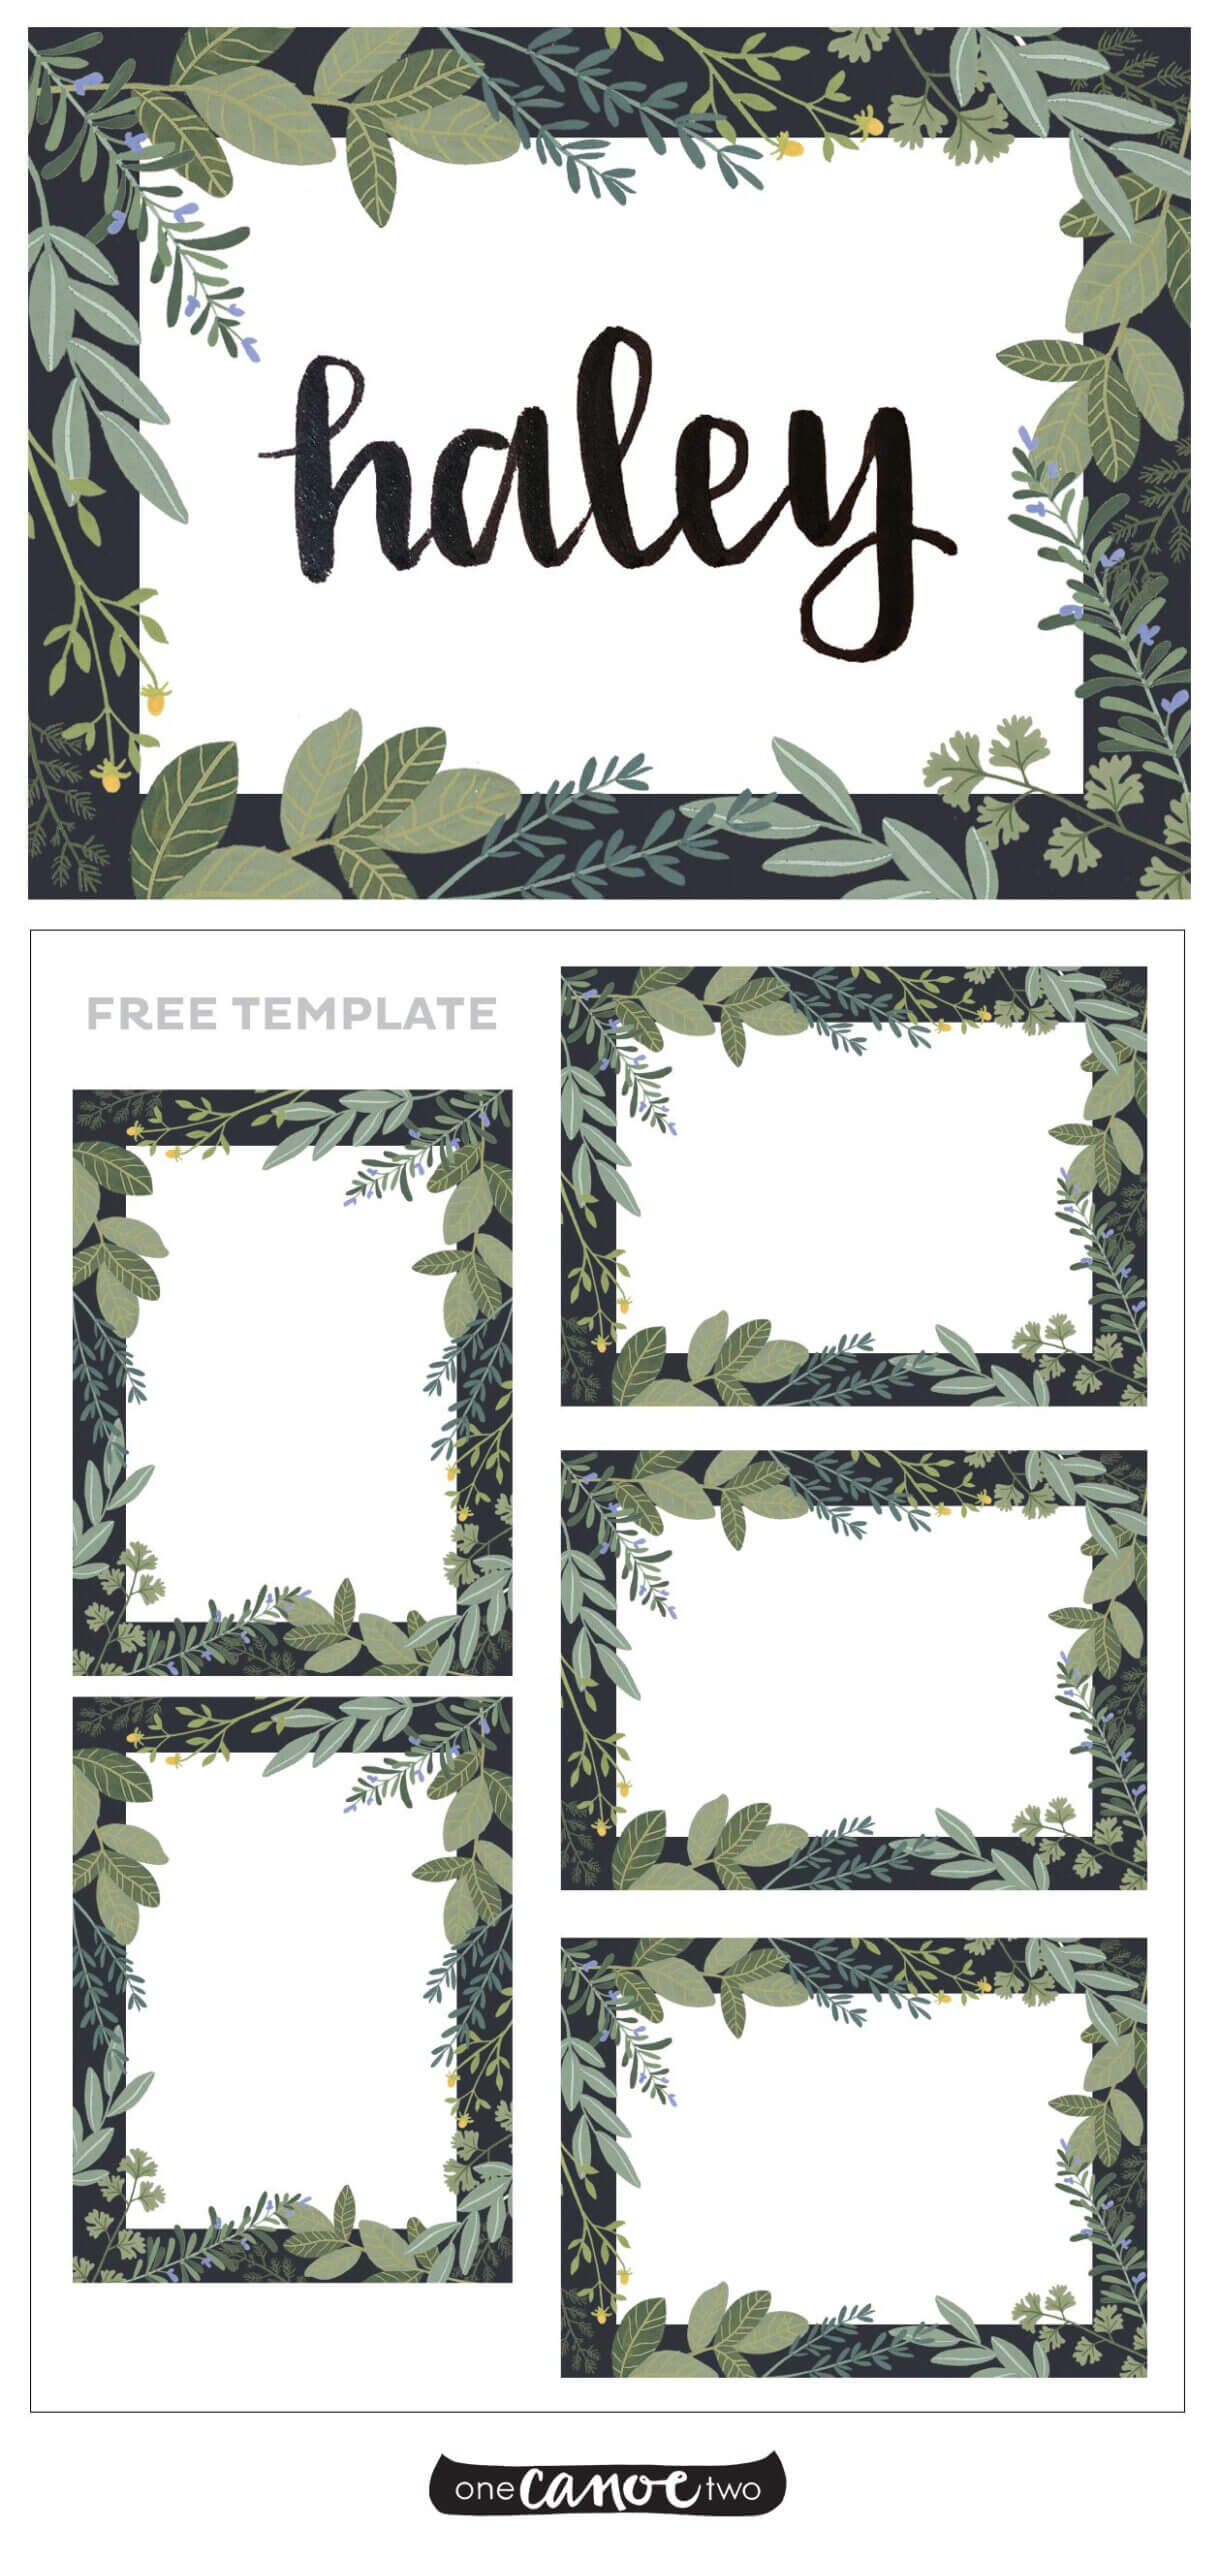 031 Free Place Card Template Excellent Ideas Templates 6 Per Within Free Template For Place Cards 6 Per Sheet